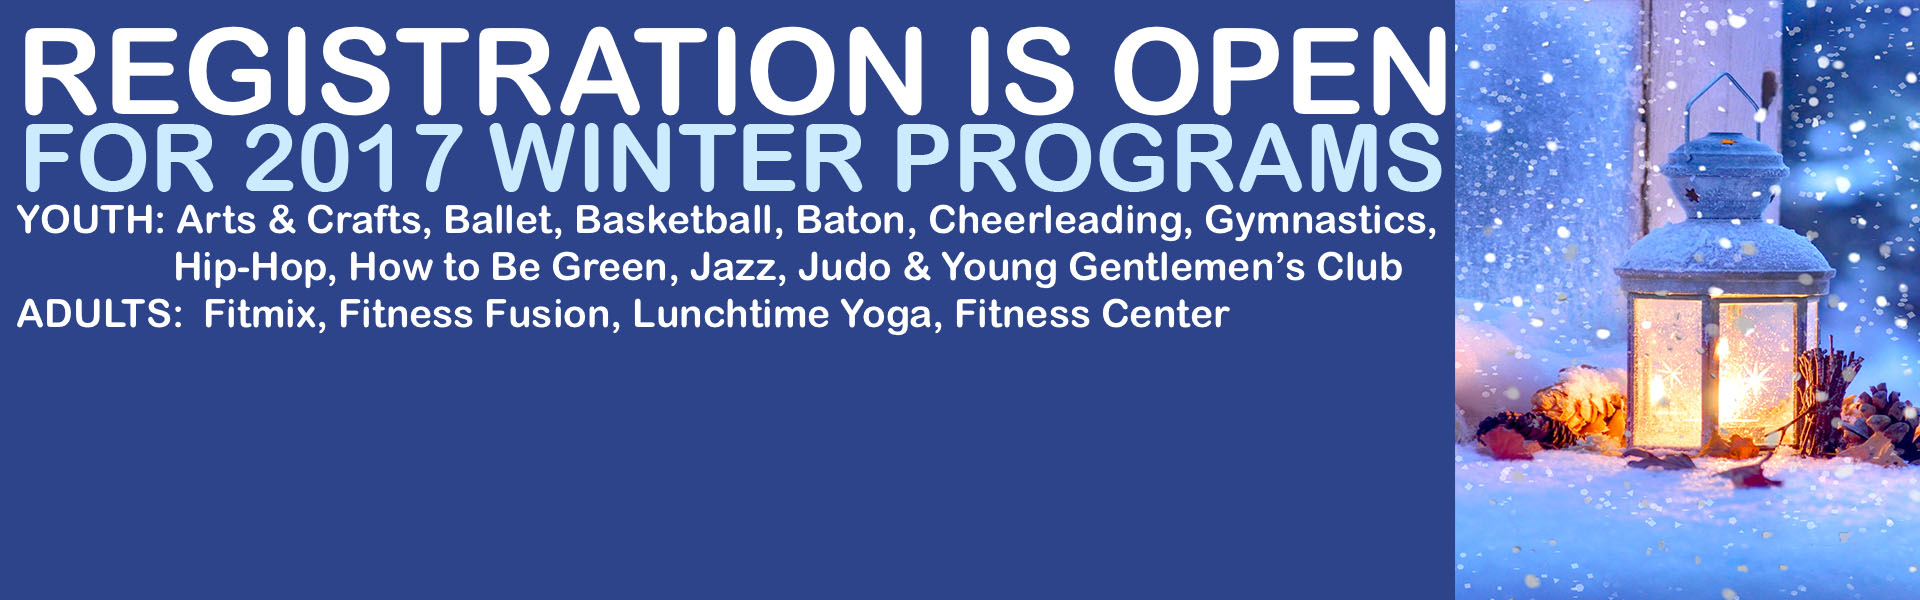 banner-winter-programs